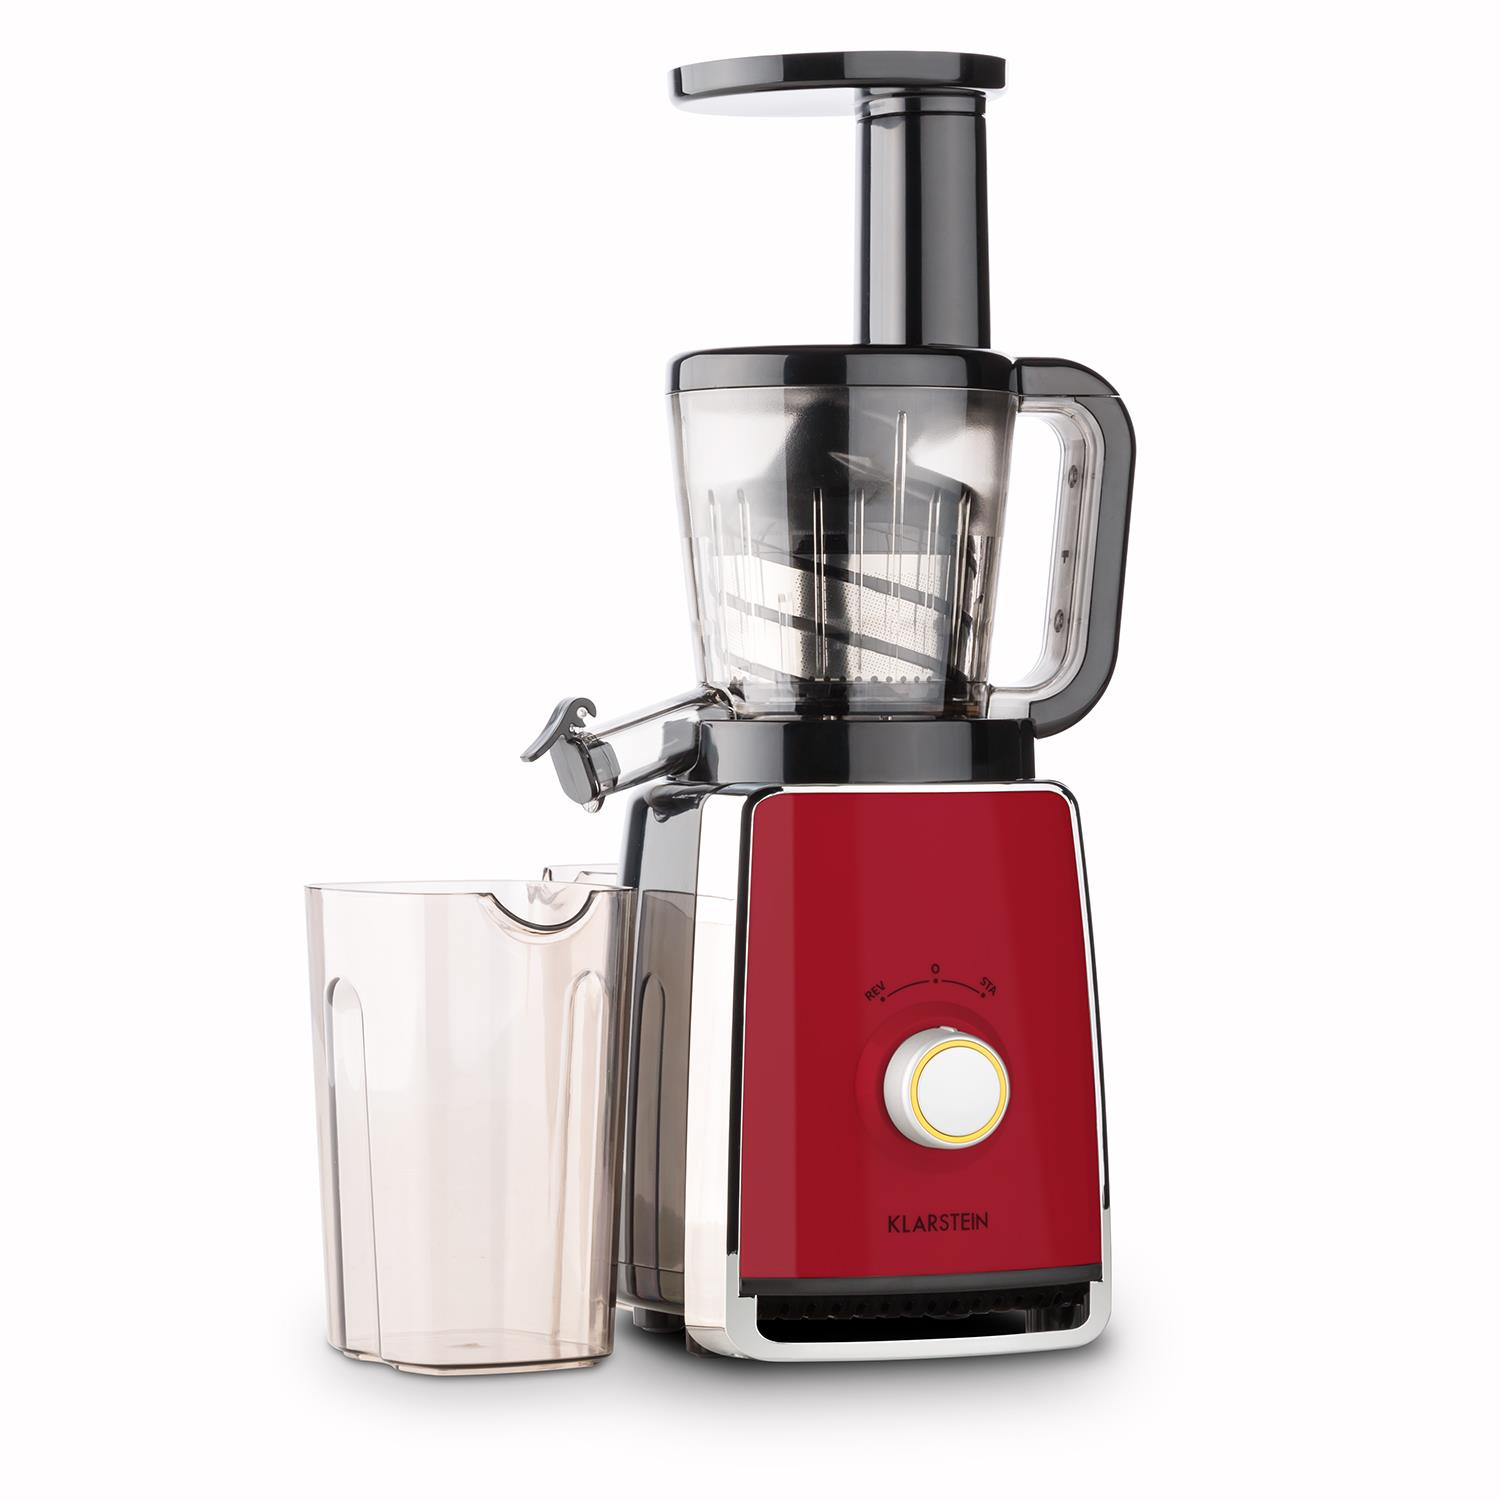 KLARSTEIN SLOW JUICER ELECTRIC TABLE TOP KITCHEN MACHINE COLD PRESS FRUIT JUICE eBay